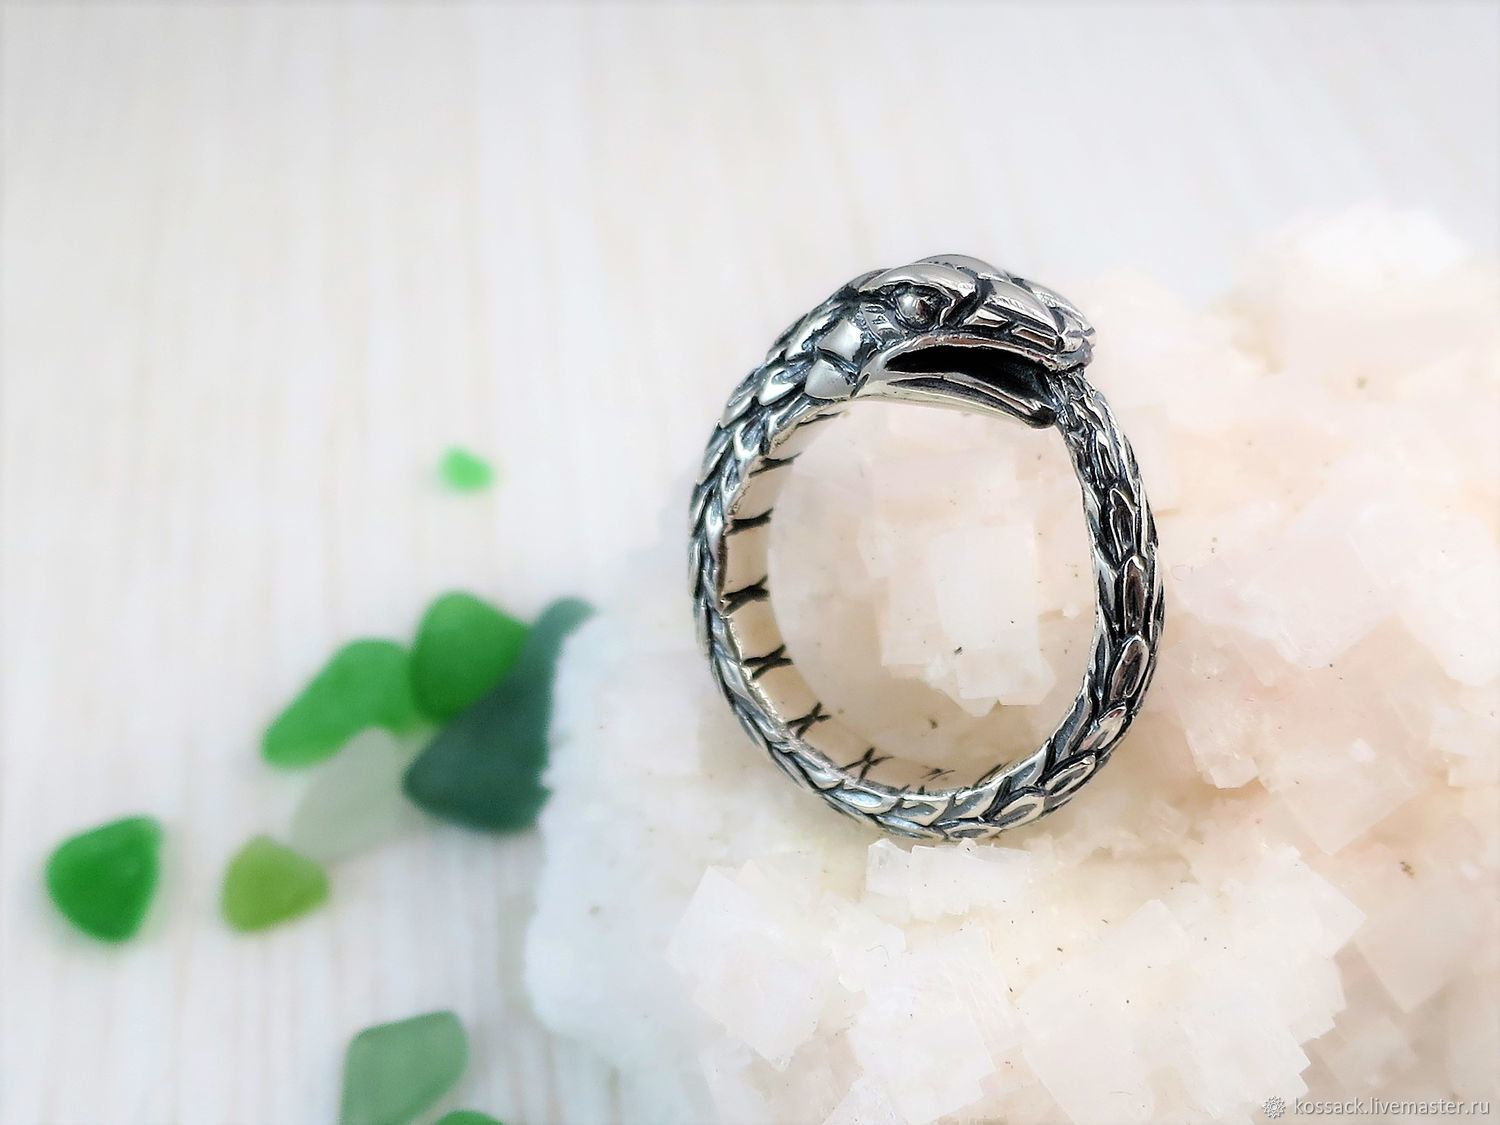 Ouroboros wide ring for men, Rings, Zaporozhye,  Фото №1